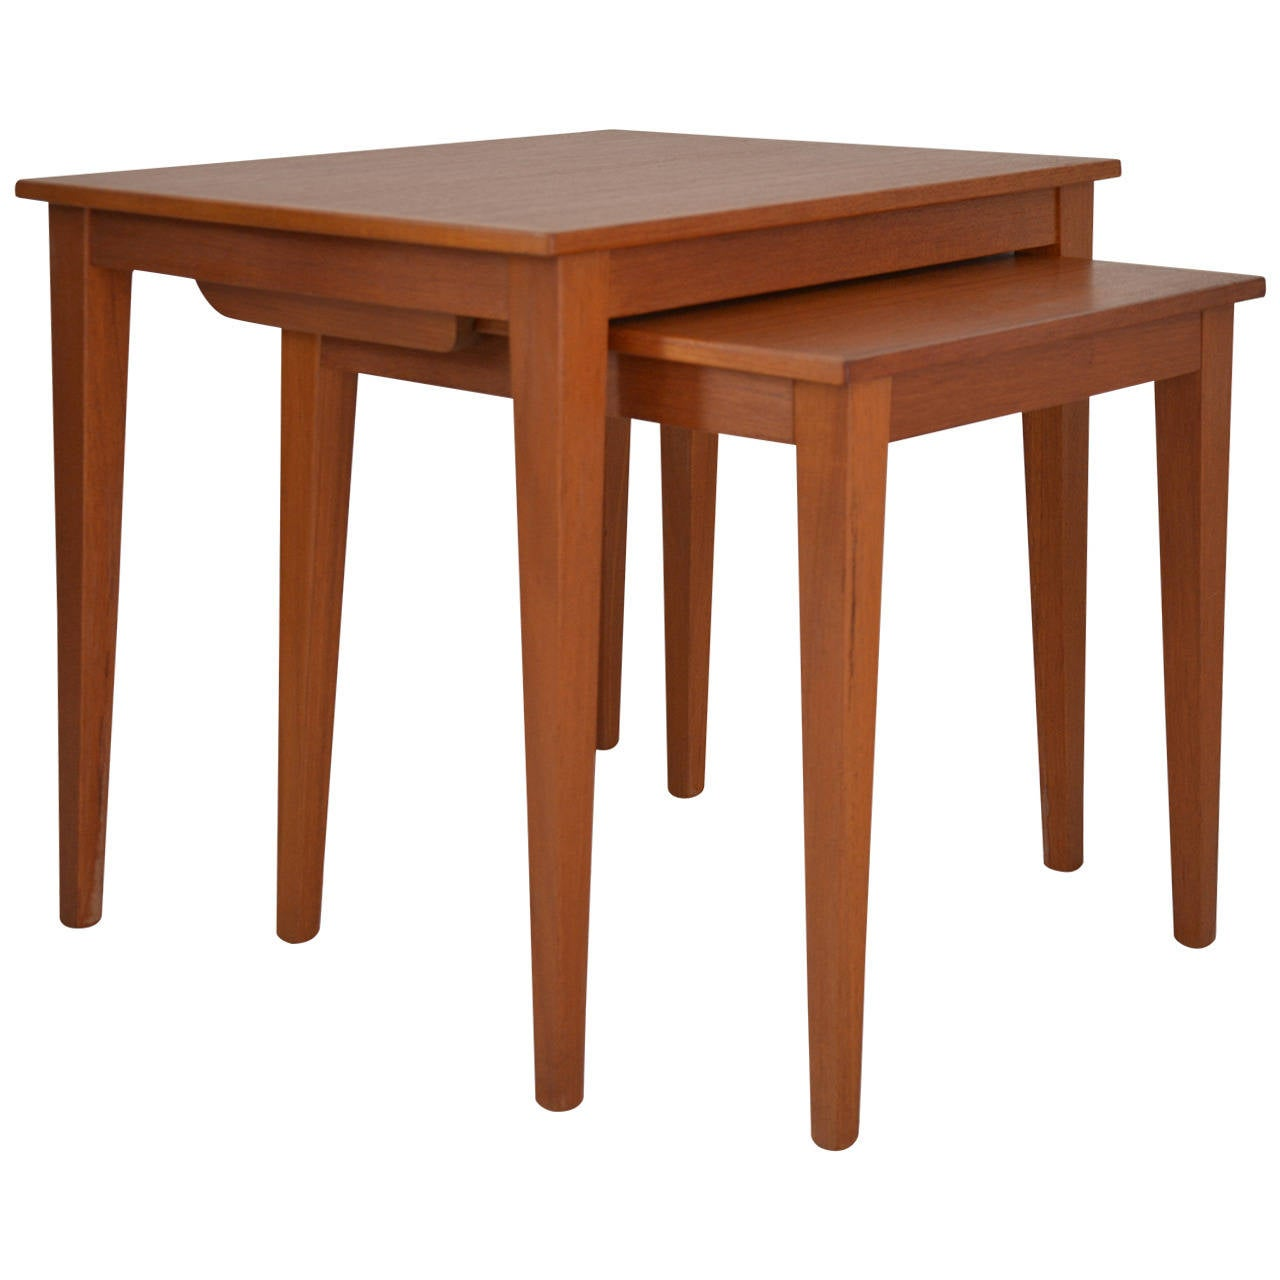 Pair of Nesting Tables 1960 Denmark Teak Wood